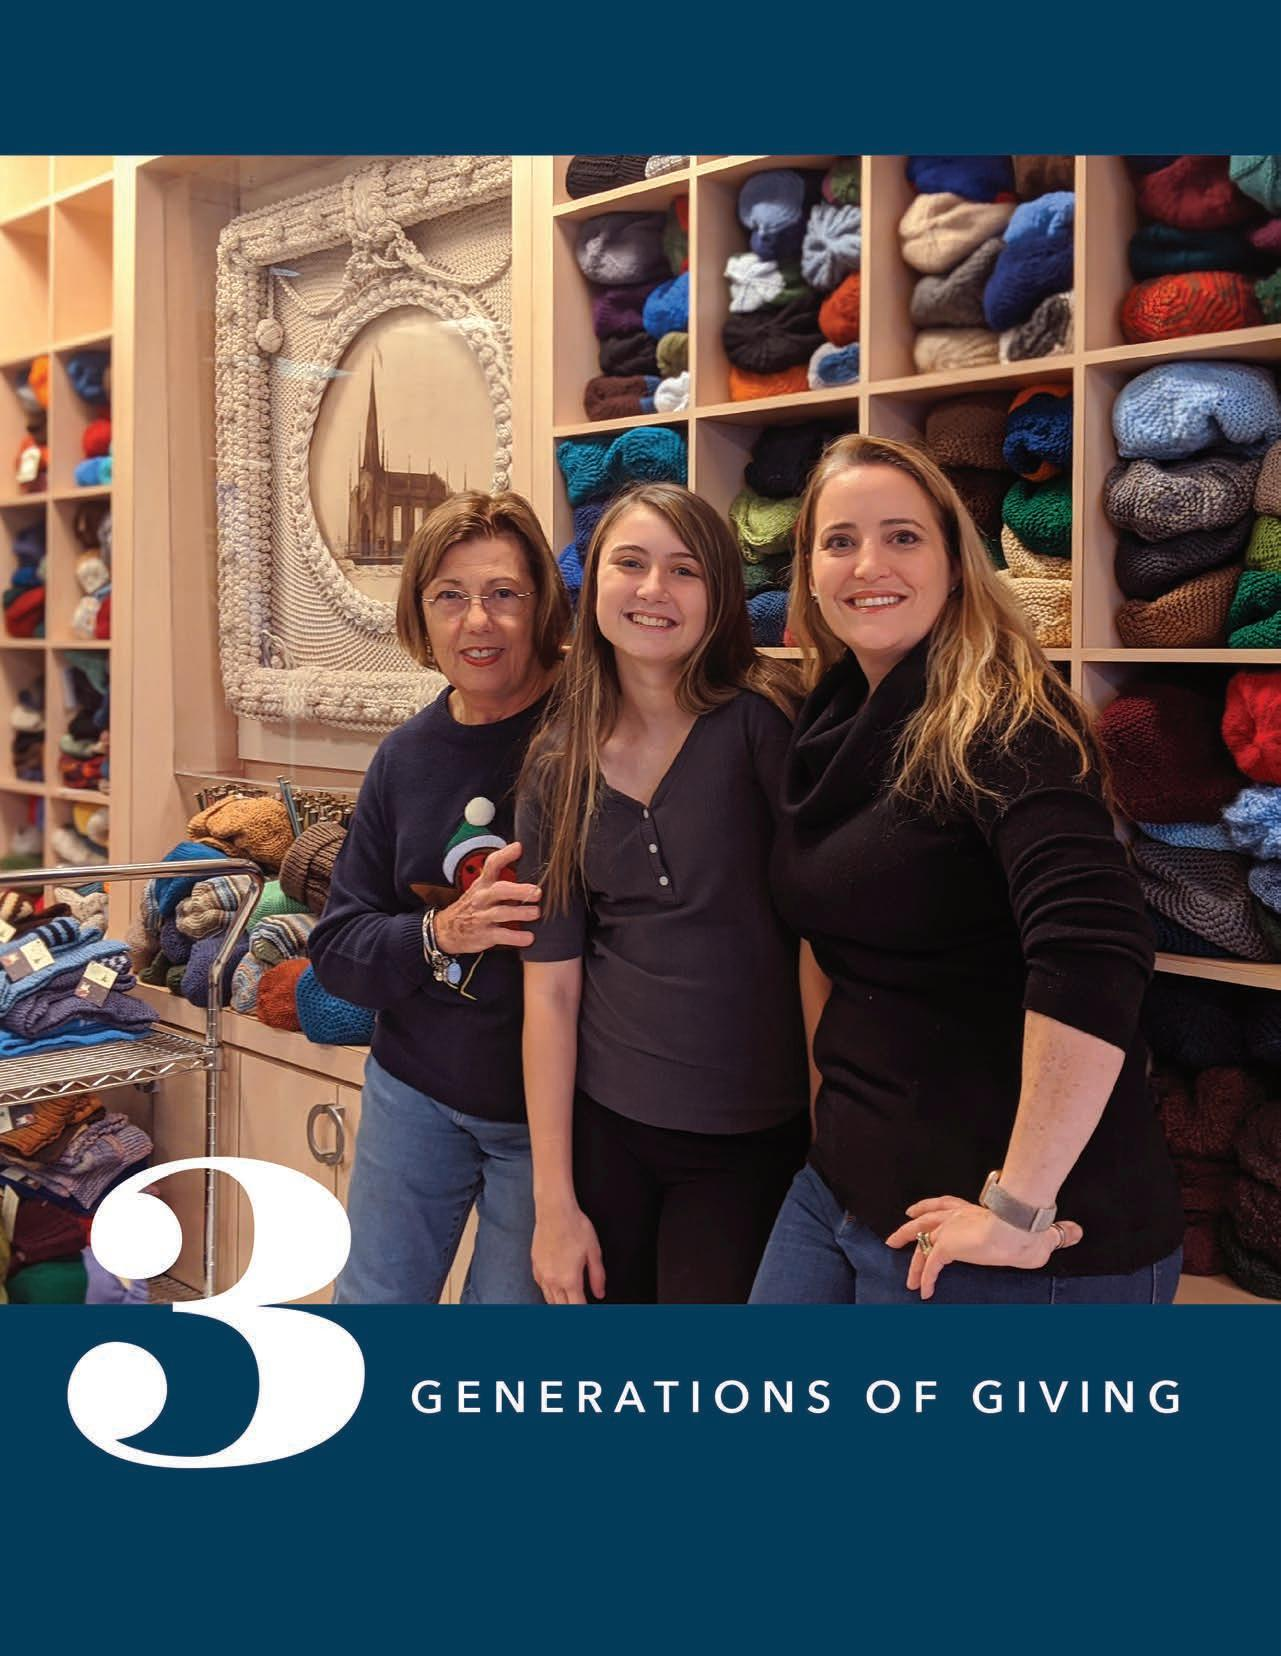 Page 4 of 3 Generations of Giving